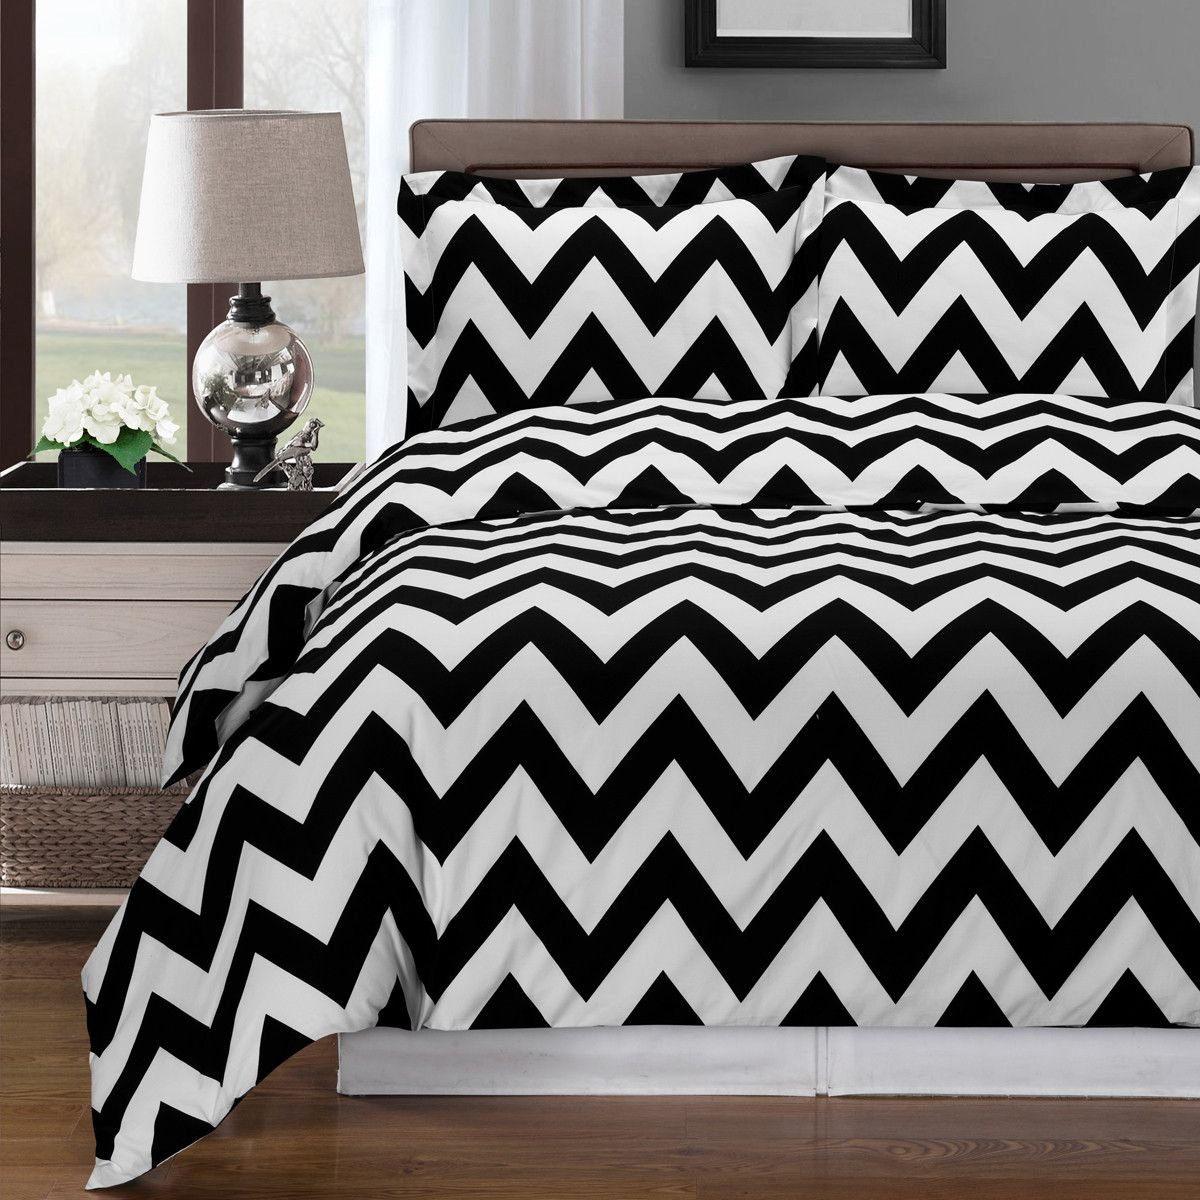 Cotton Bedding Items Size Striped